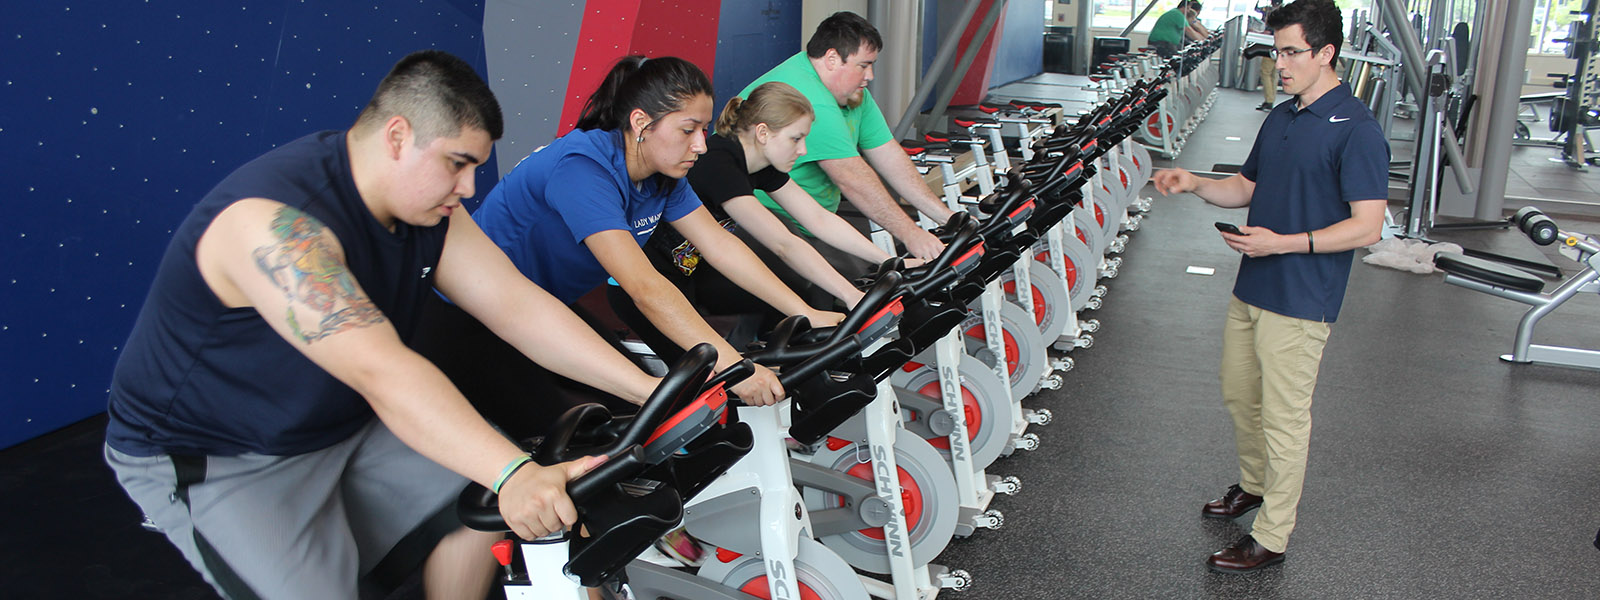 Image of students using exercise bicycles